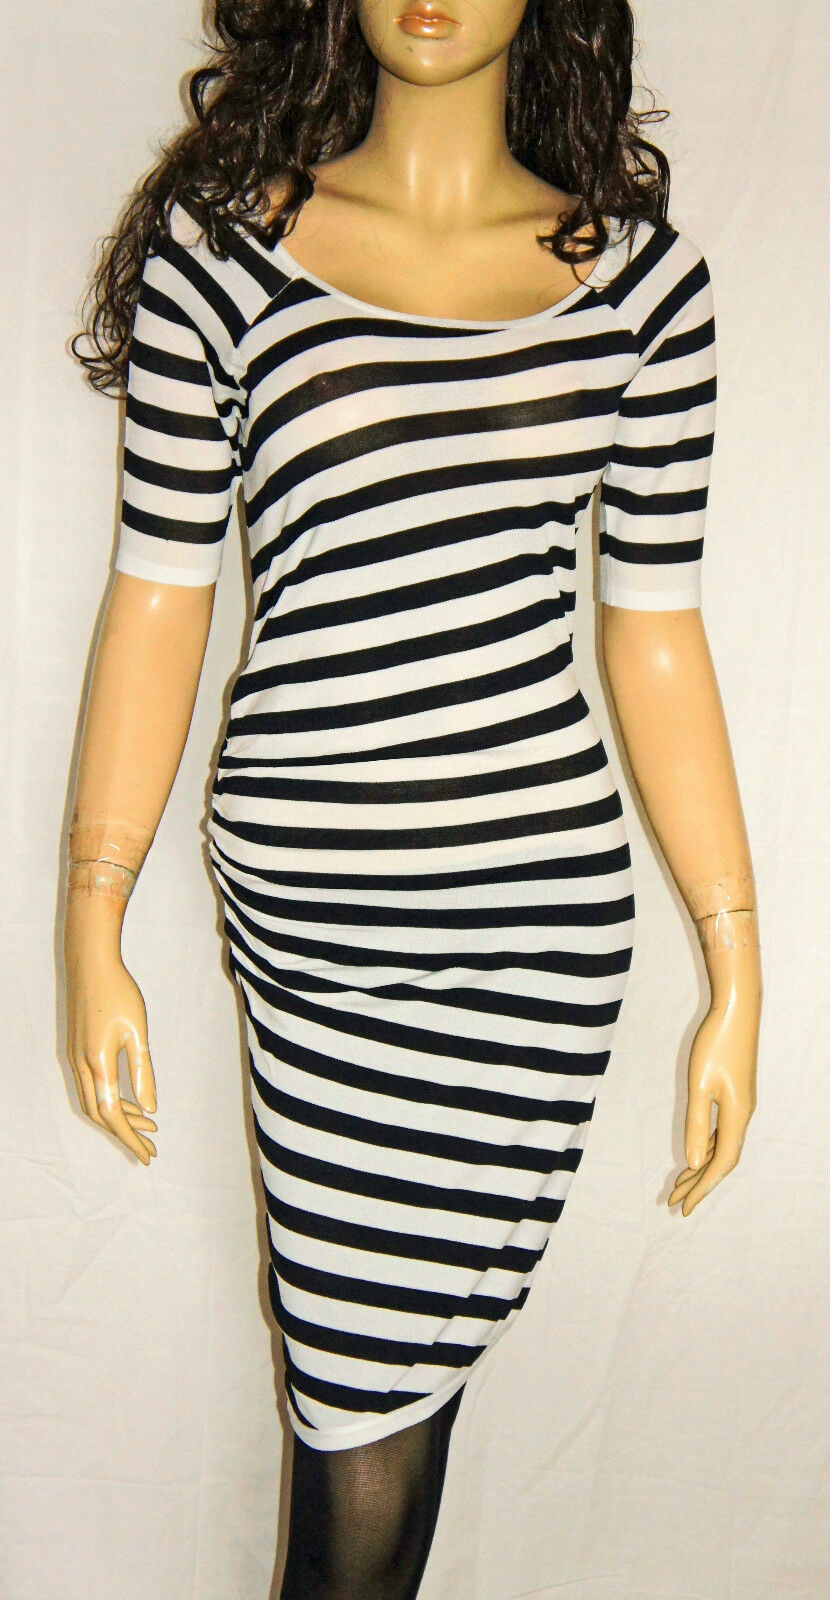 Guess by Marciano Dress Stretch Dress Size 36 New